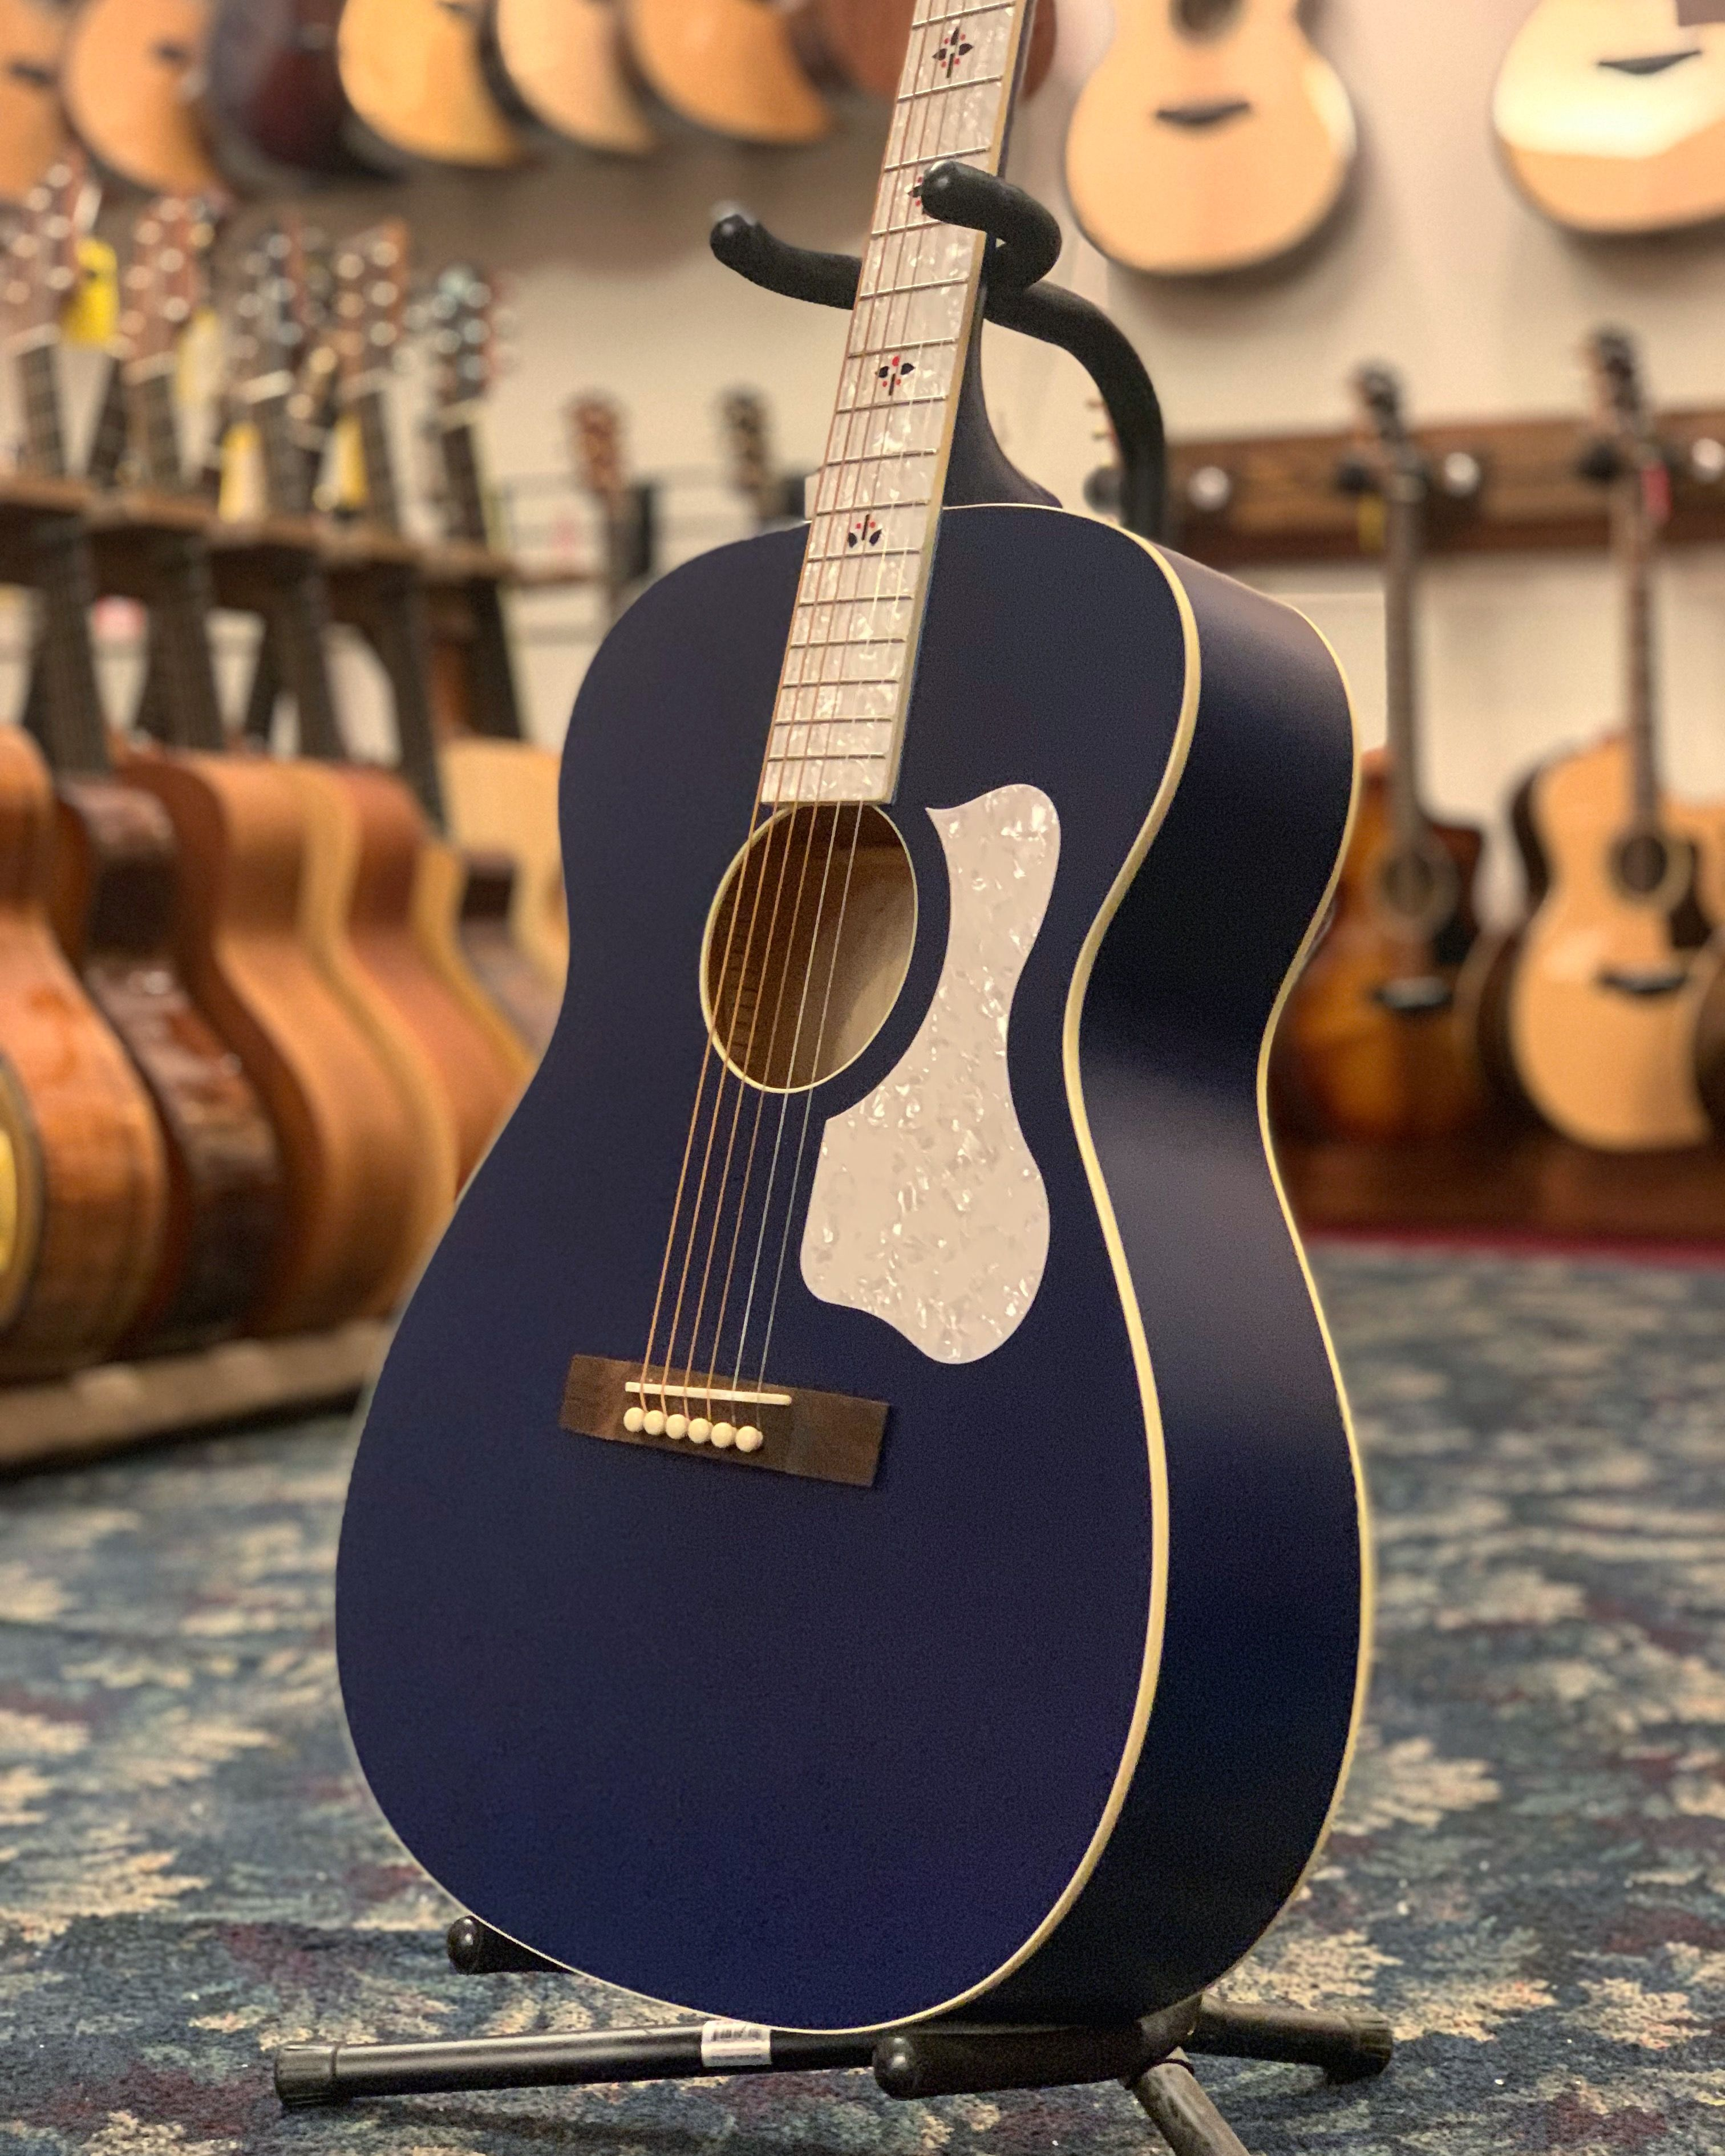 Recording King Century33 Limited Edition 2 000 Acoustic Guitar Wabash Blue Acoustic Guitar Guitar Recording King